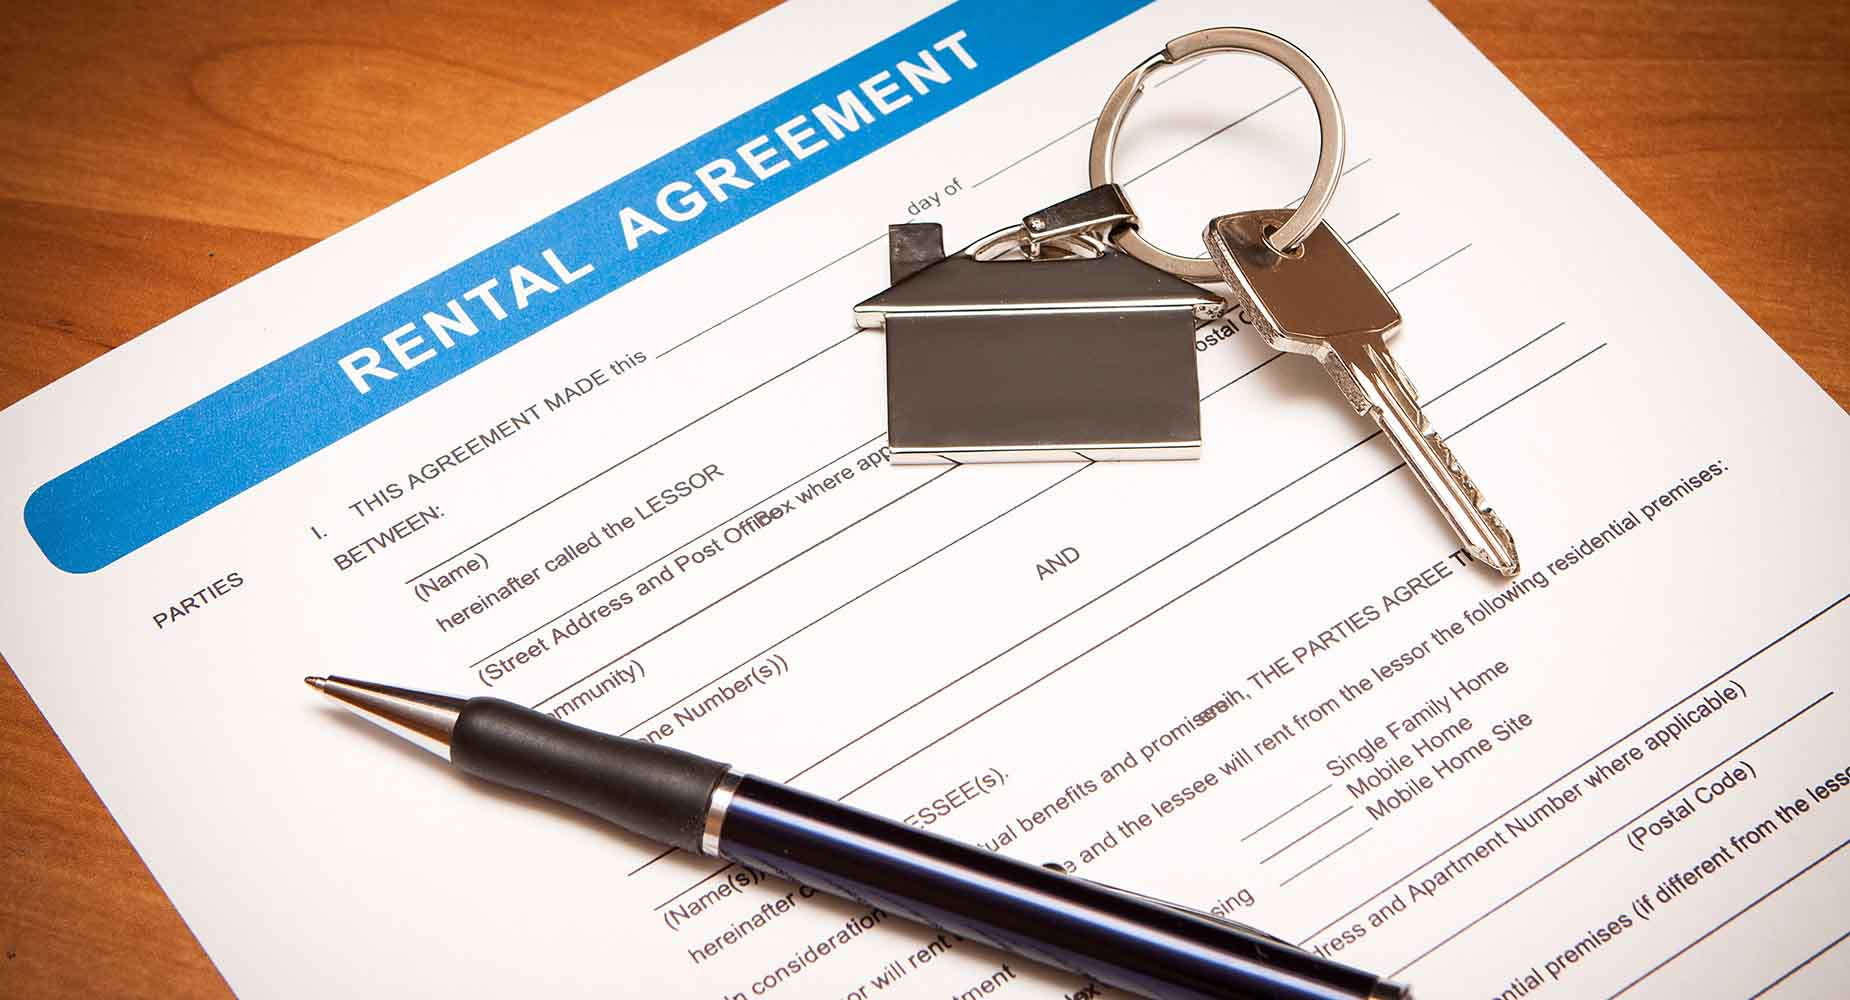 rent-lease-property-house-agreement-tenant-agent-landlord-contract.jpg